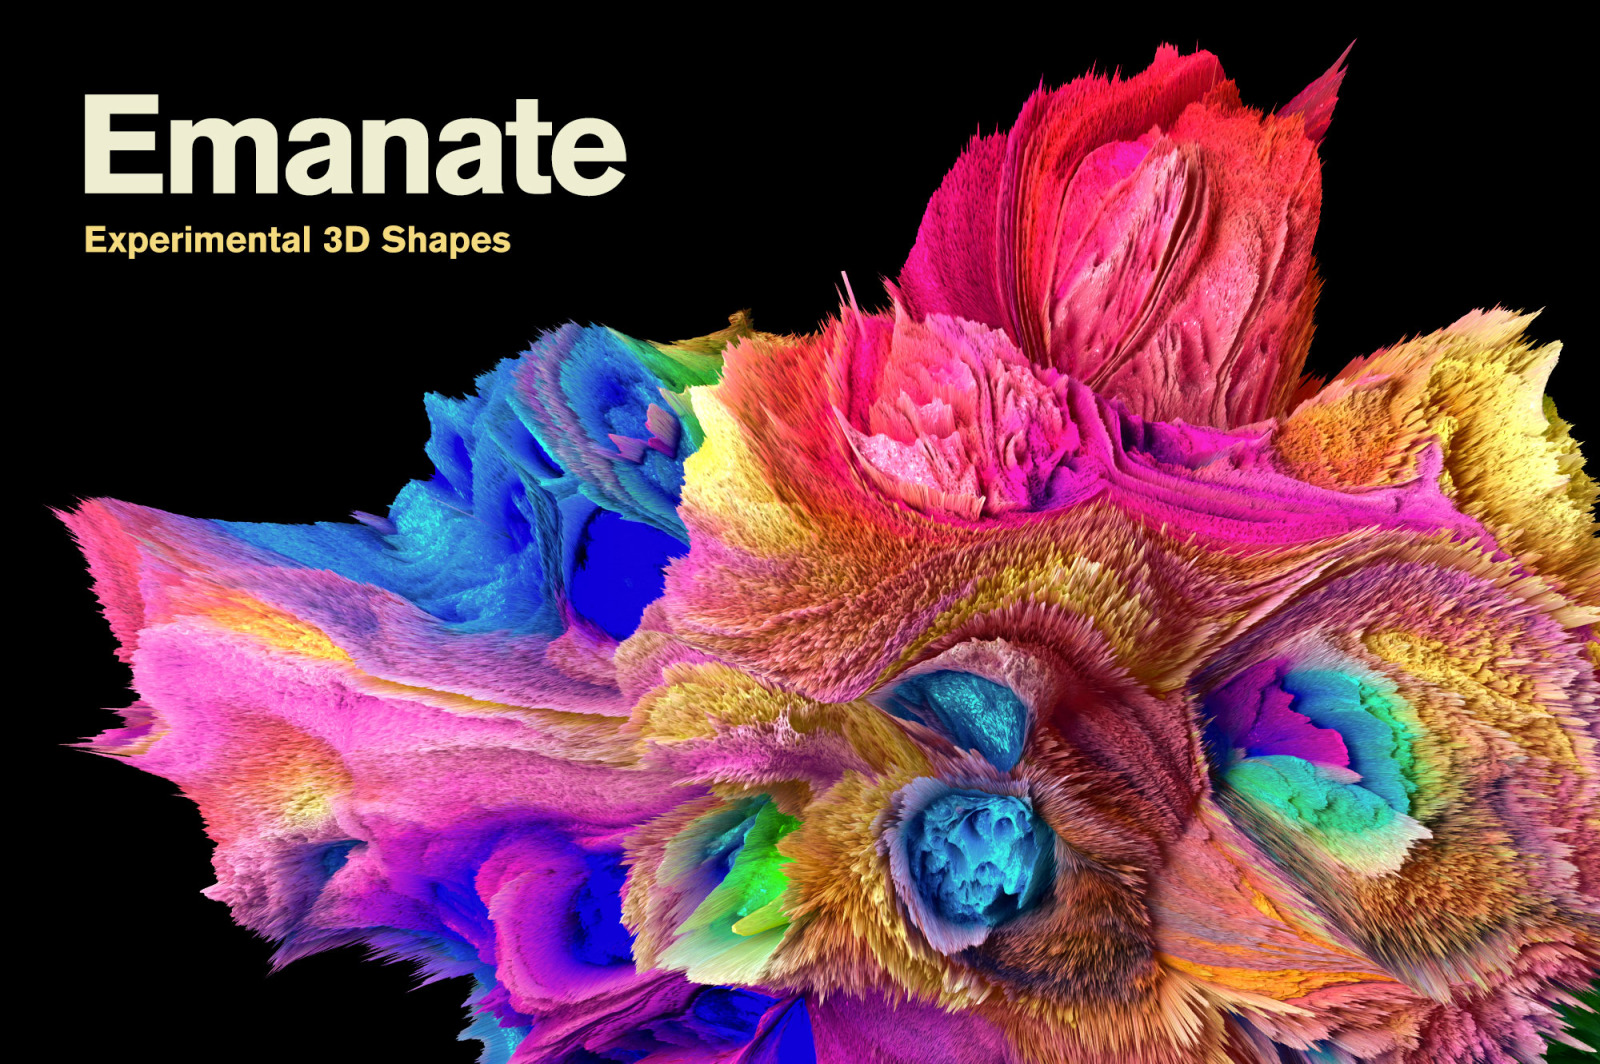 Emanate: Experimental 3D Shapes